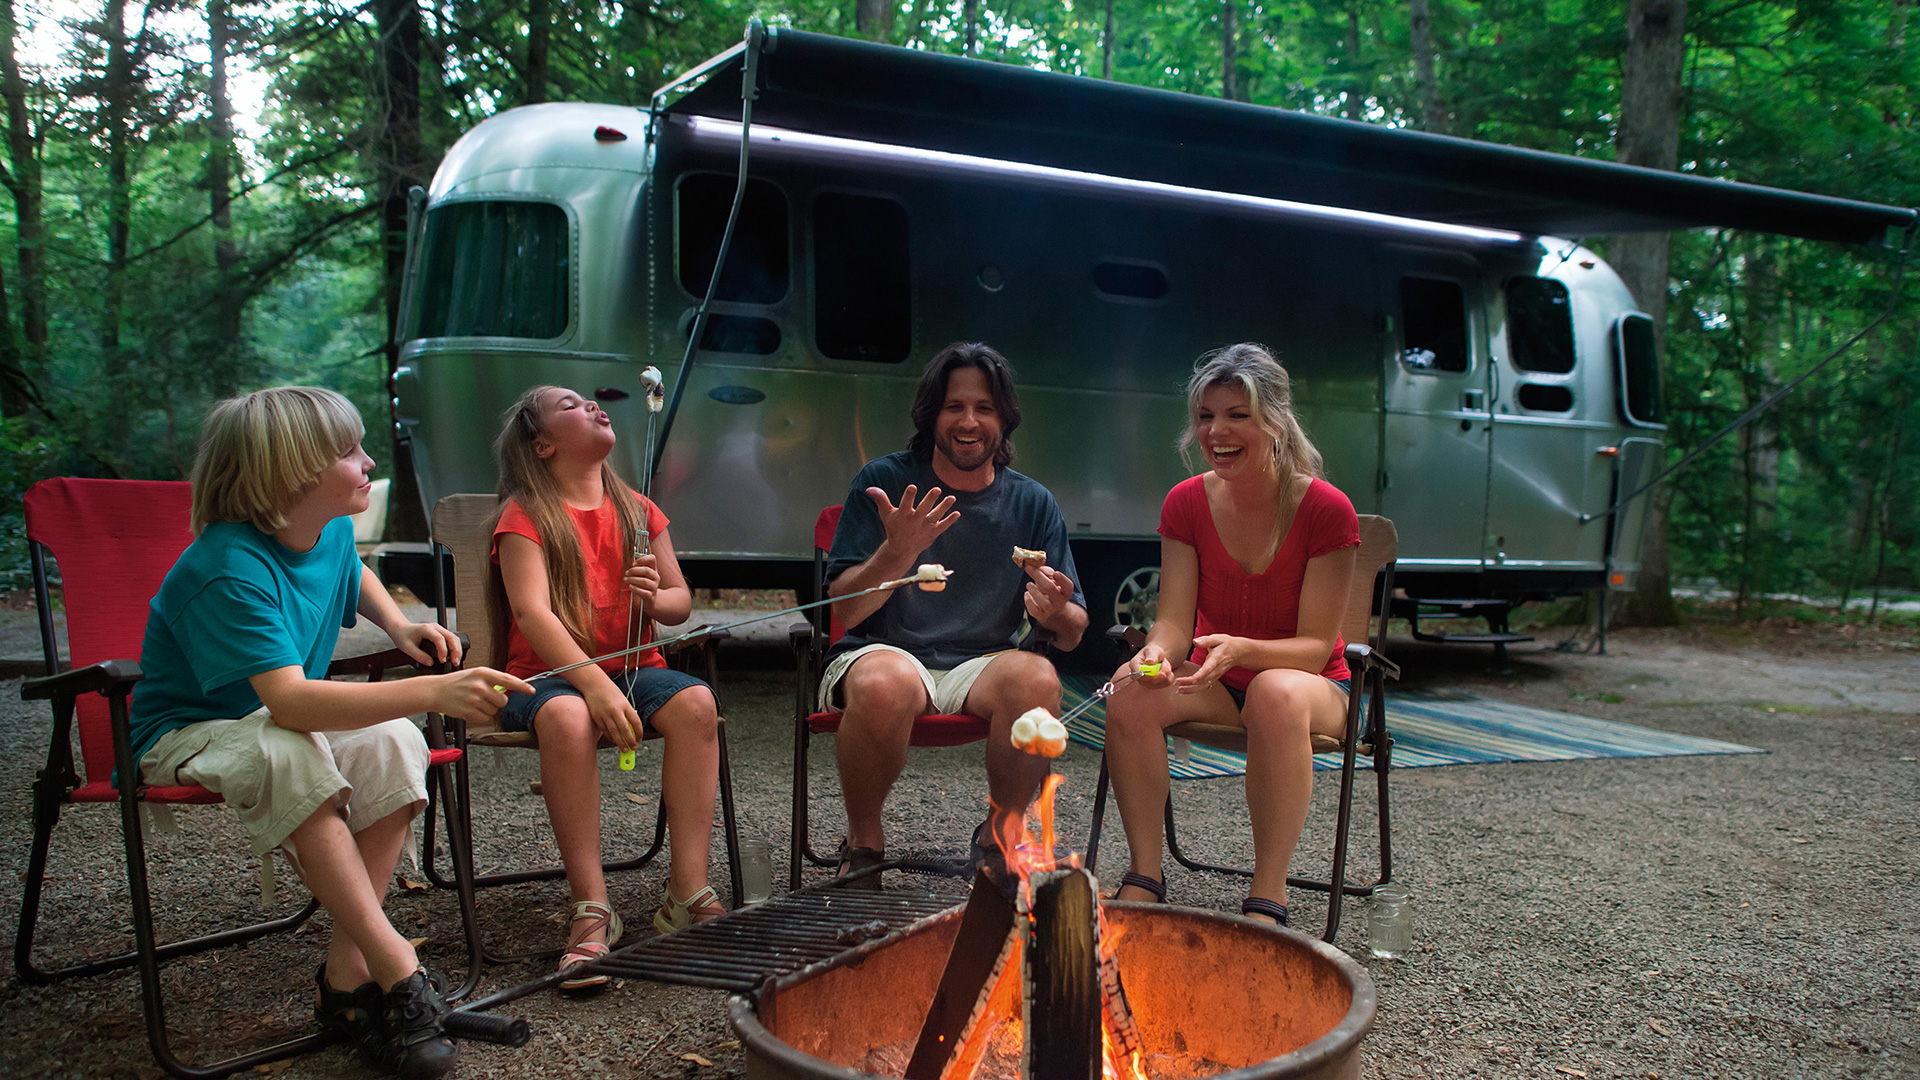 Family-Traveling-Together-by-Fire-Pit-Airstream-Flying-Cloud